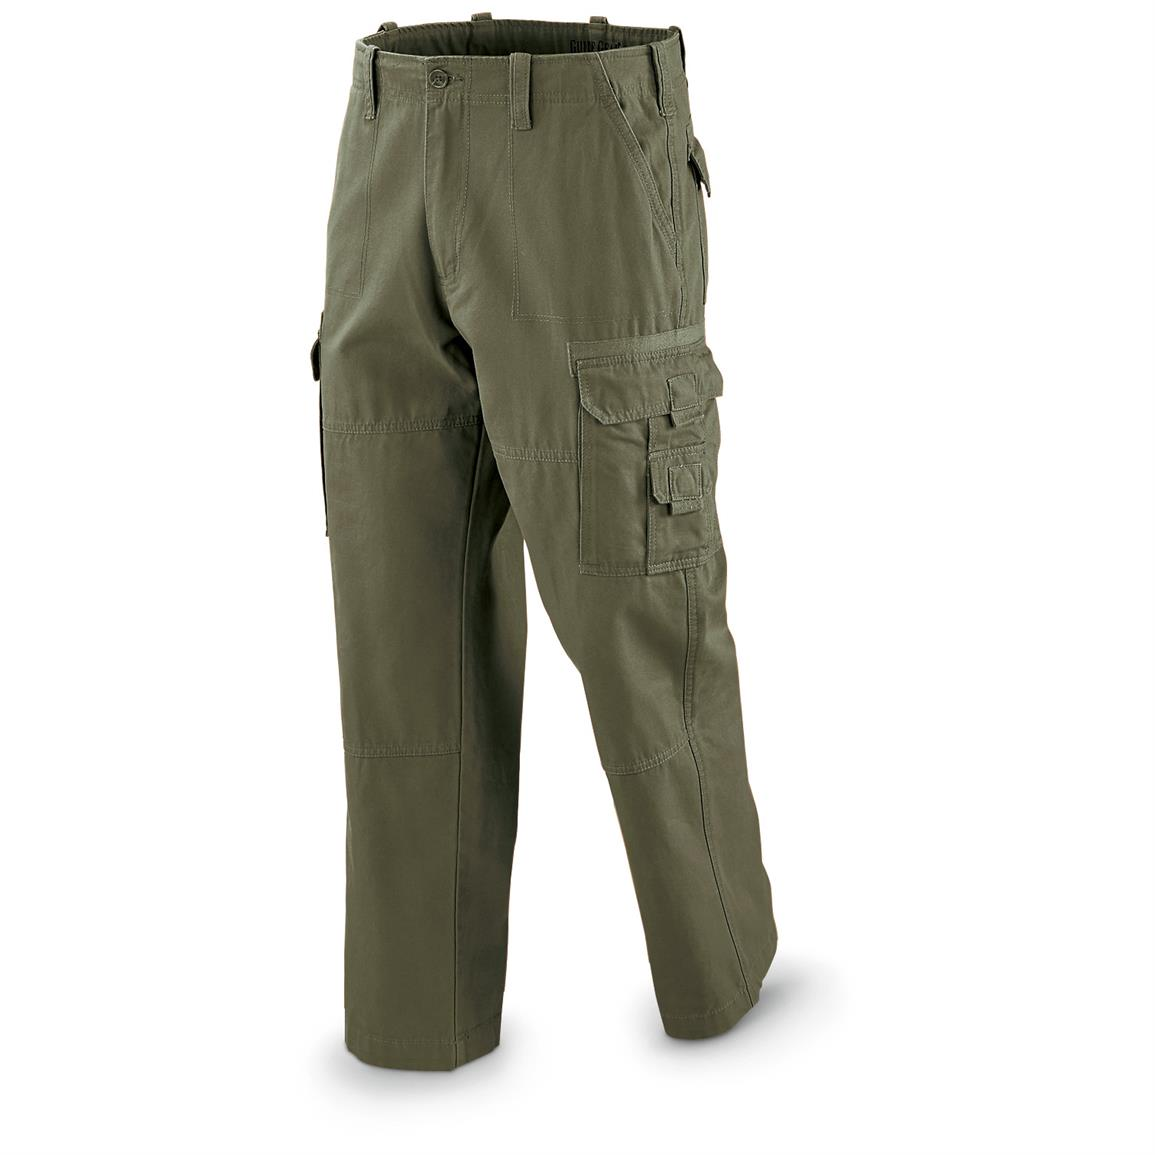 Guide Gear Men's Cargo Pants, Olive